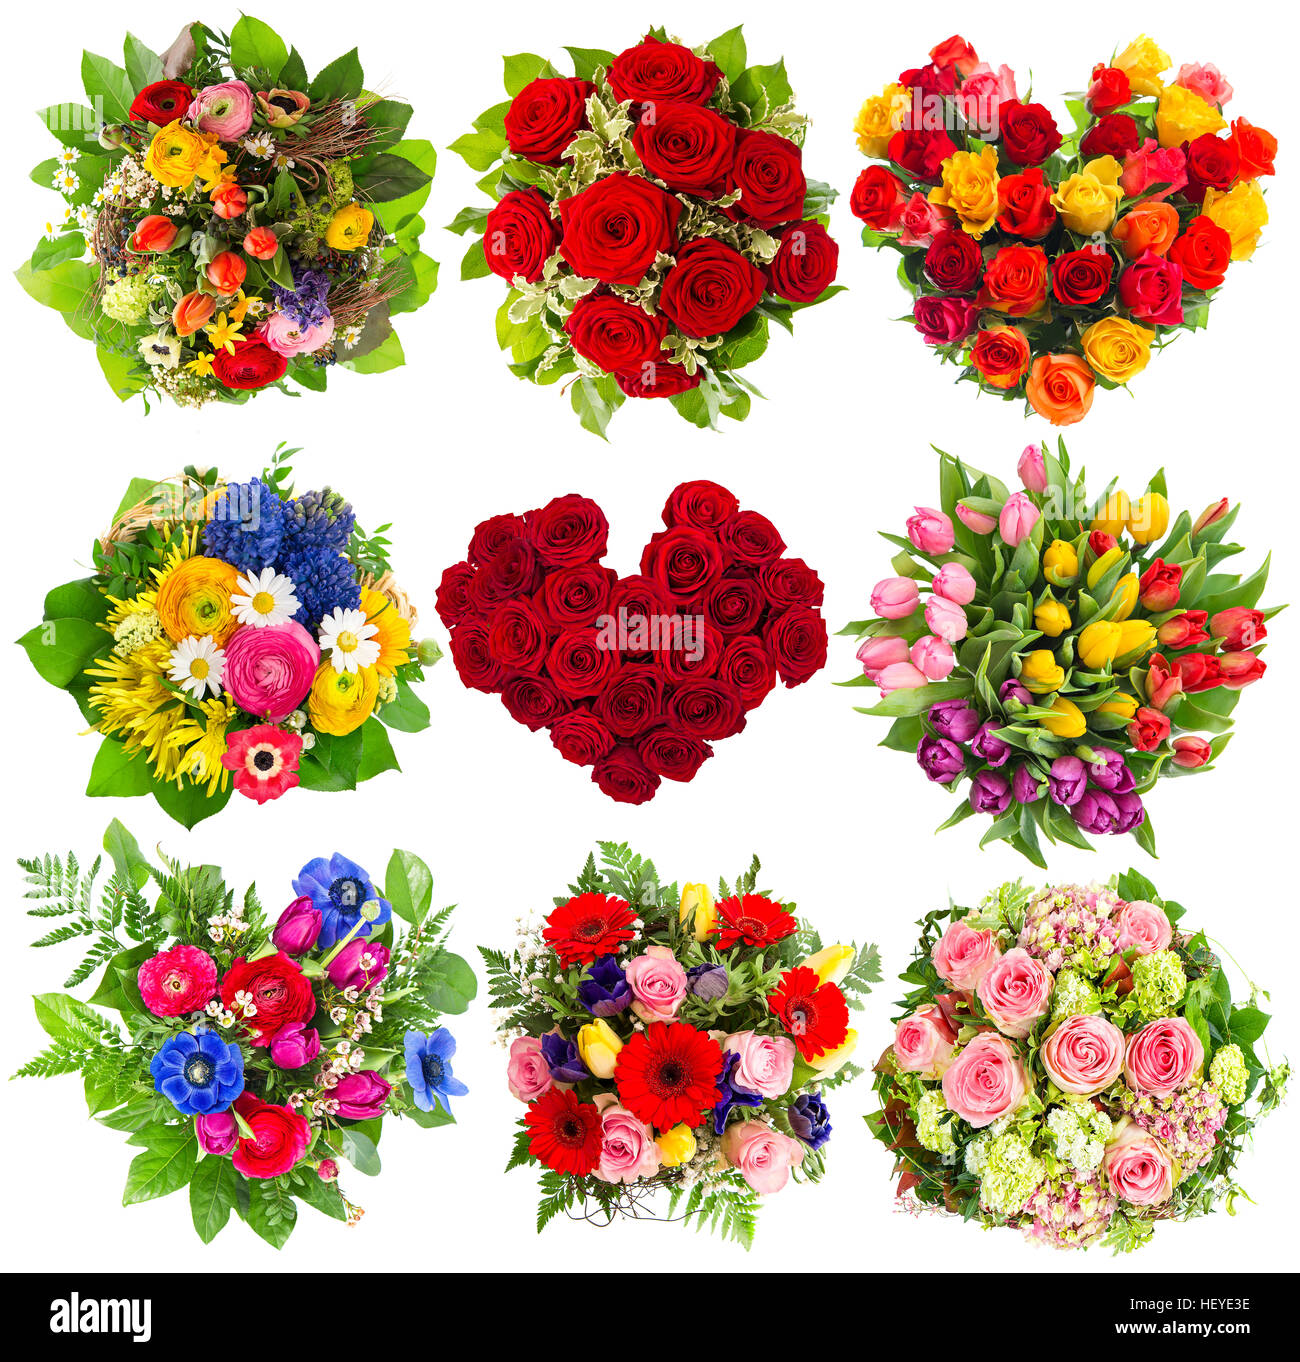 Bouquets of colorful flowers for Birthday, Wedding, Mothers Day ...